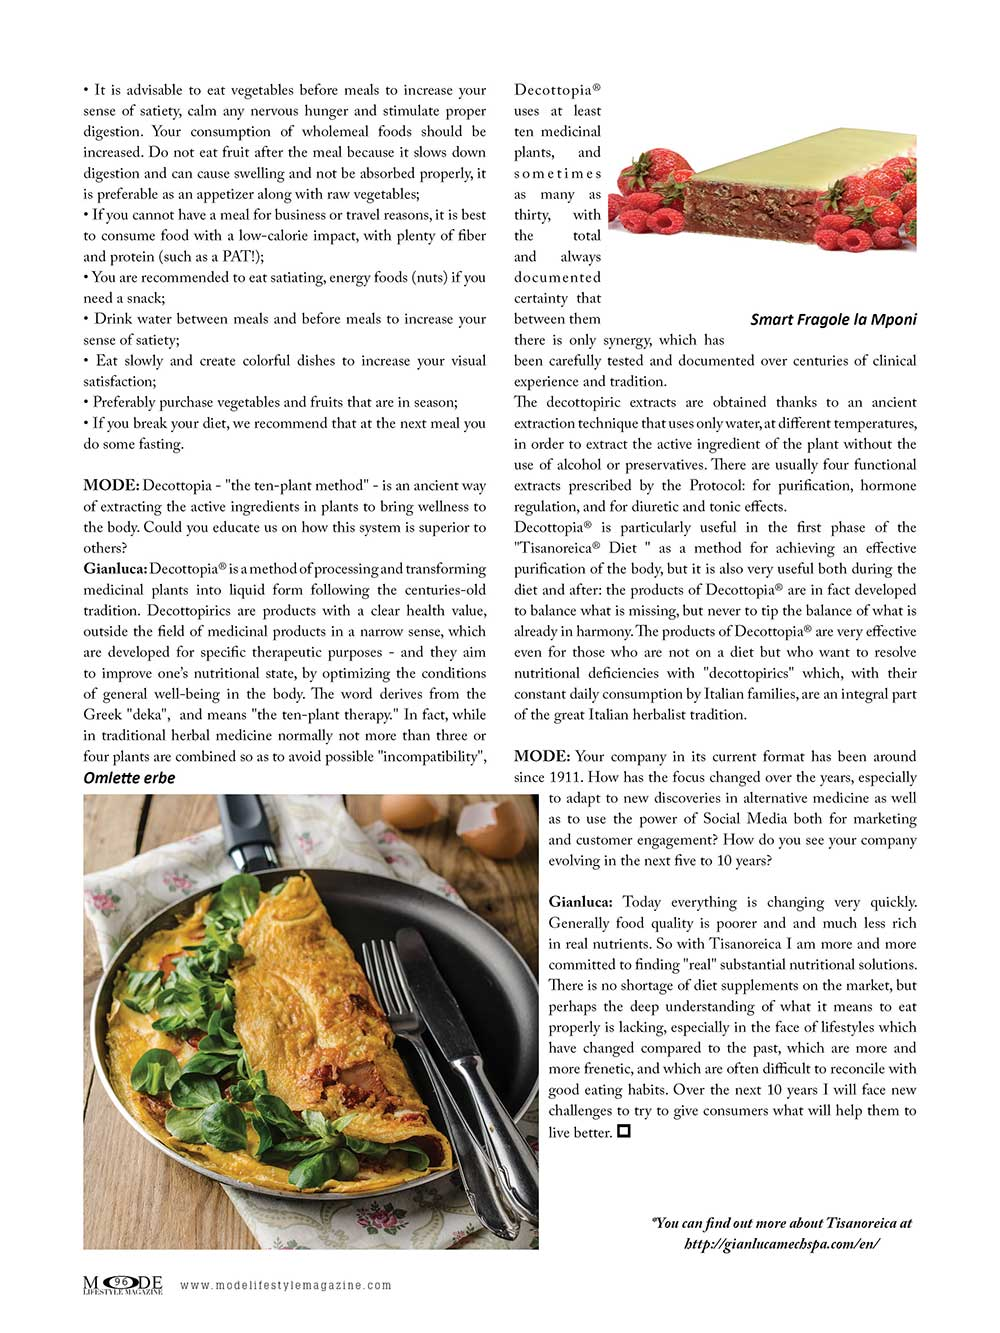 TISANOREICA - A modern diet from a historic Italian family. Low-carb - normal protein meals.